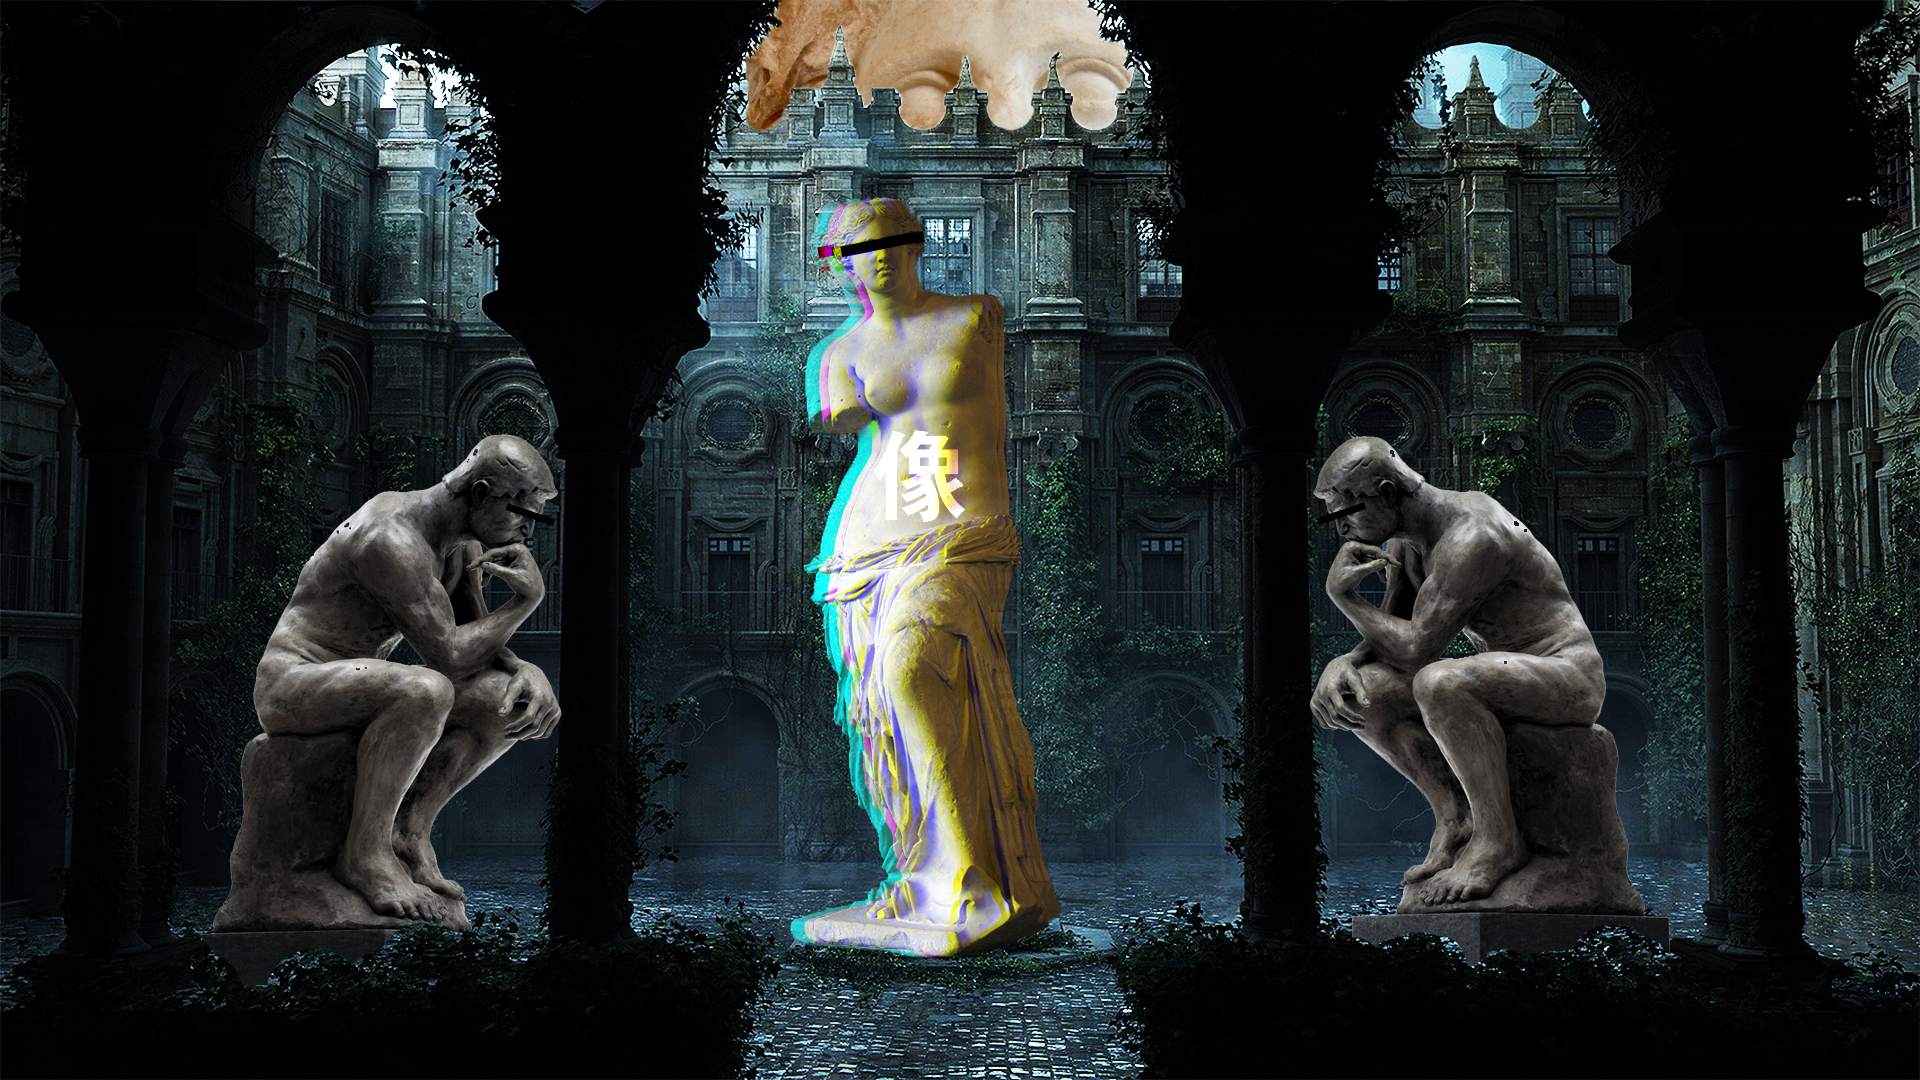 General 1920x1080 neon statue courtyard Europe vaporwave glitch art